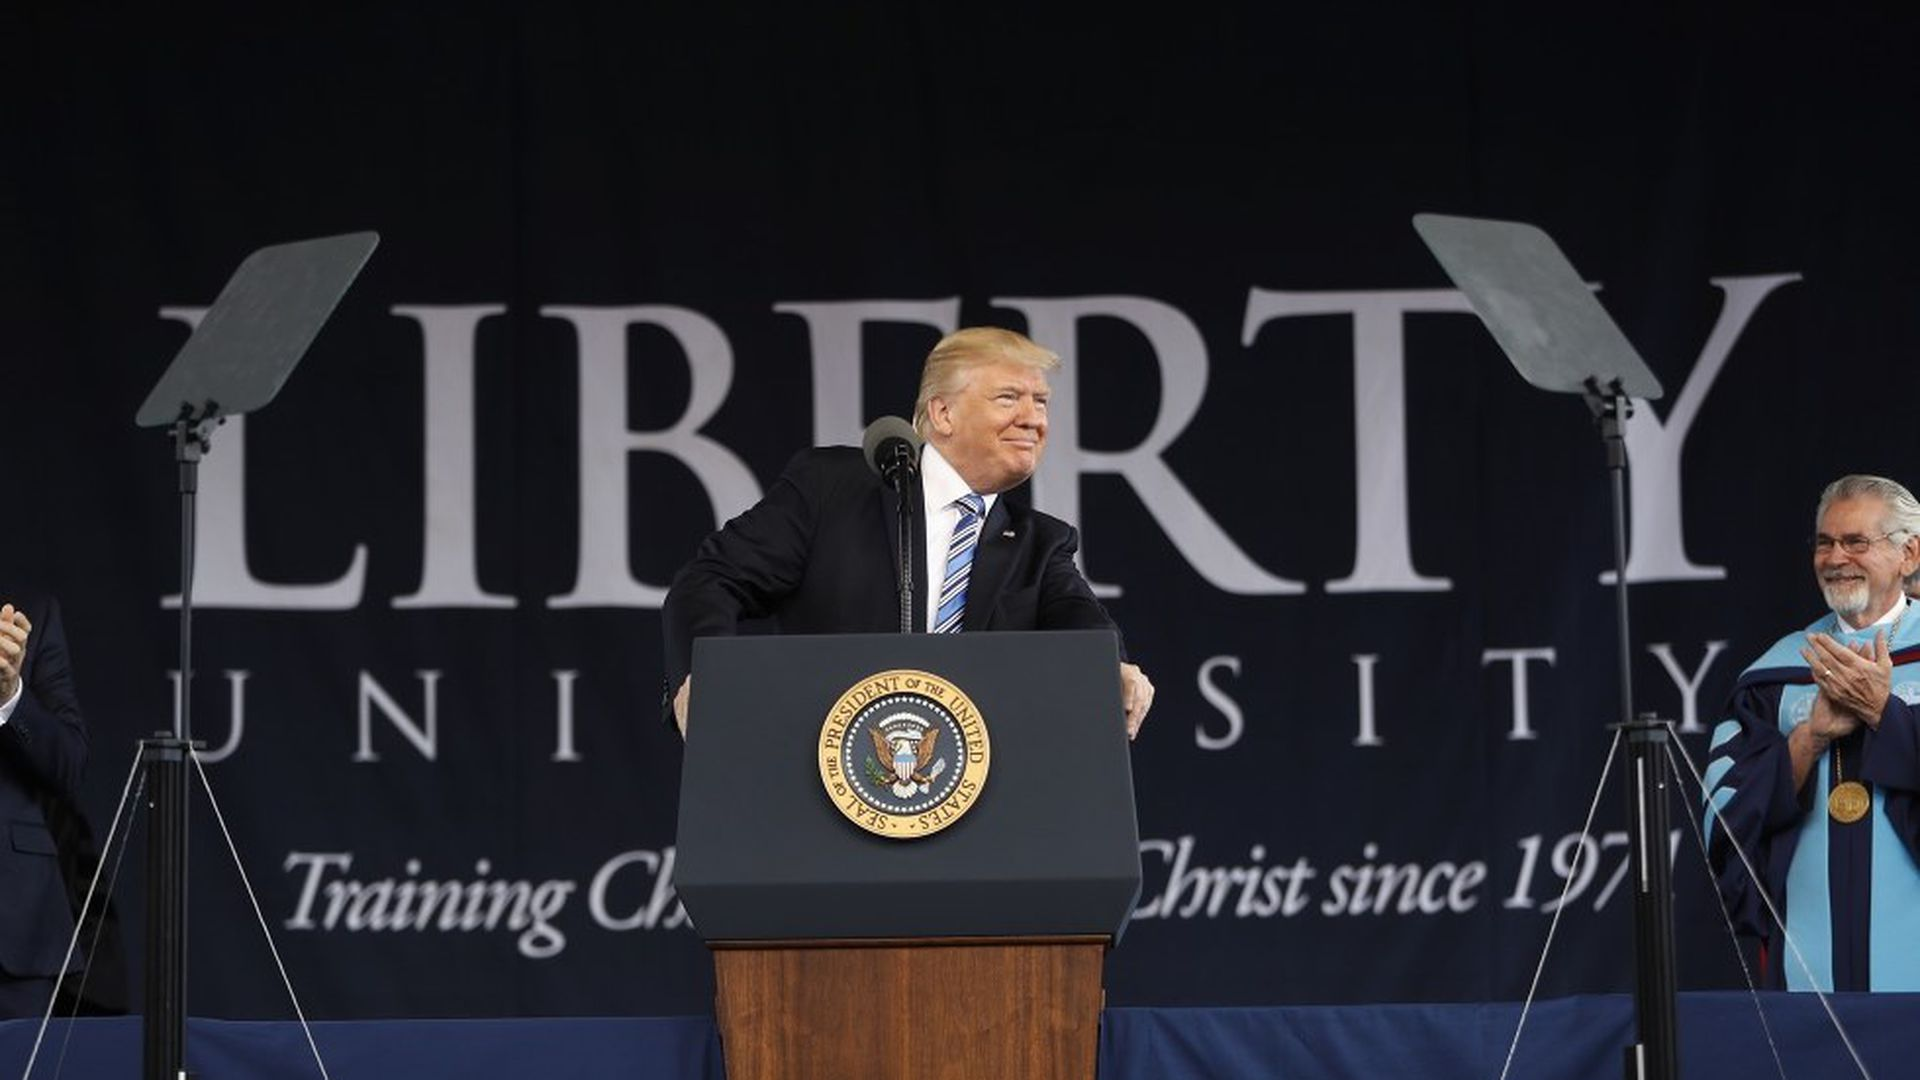 Examining evangelicalism in the age of Trump